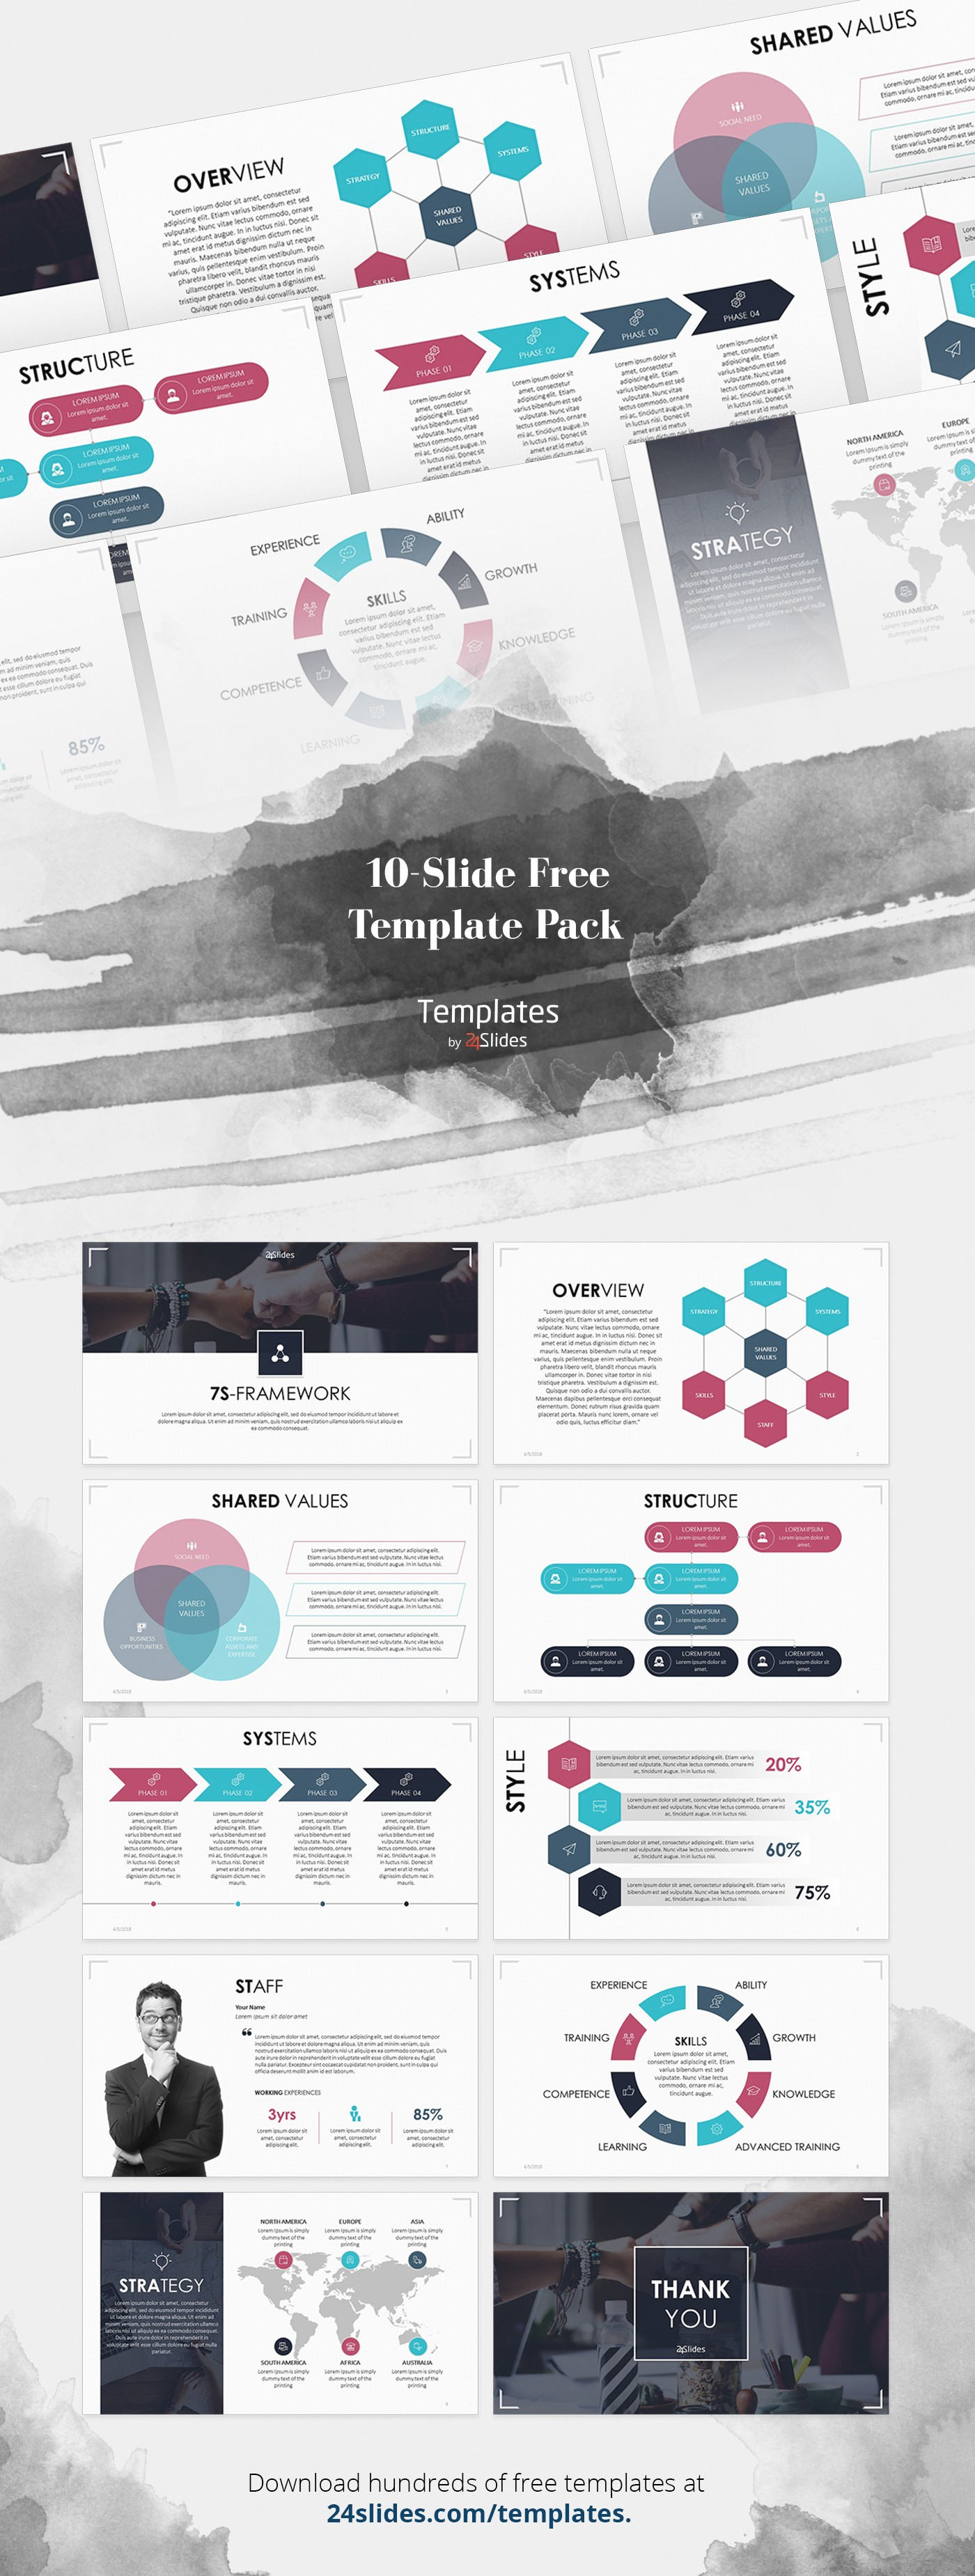 7s Framework Corporate Presentation Template Free Download